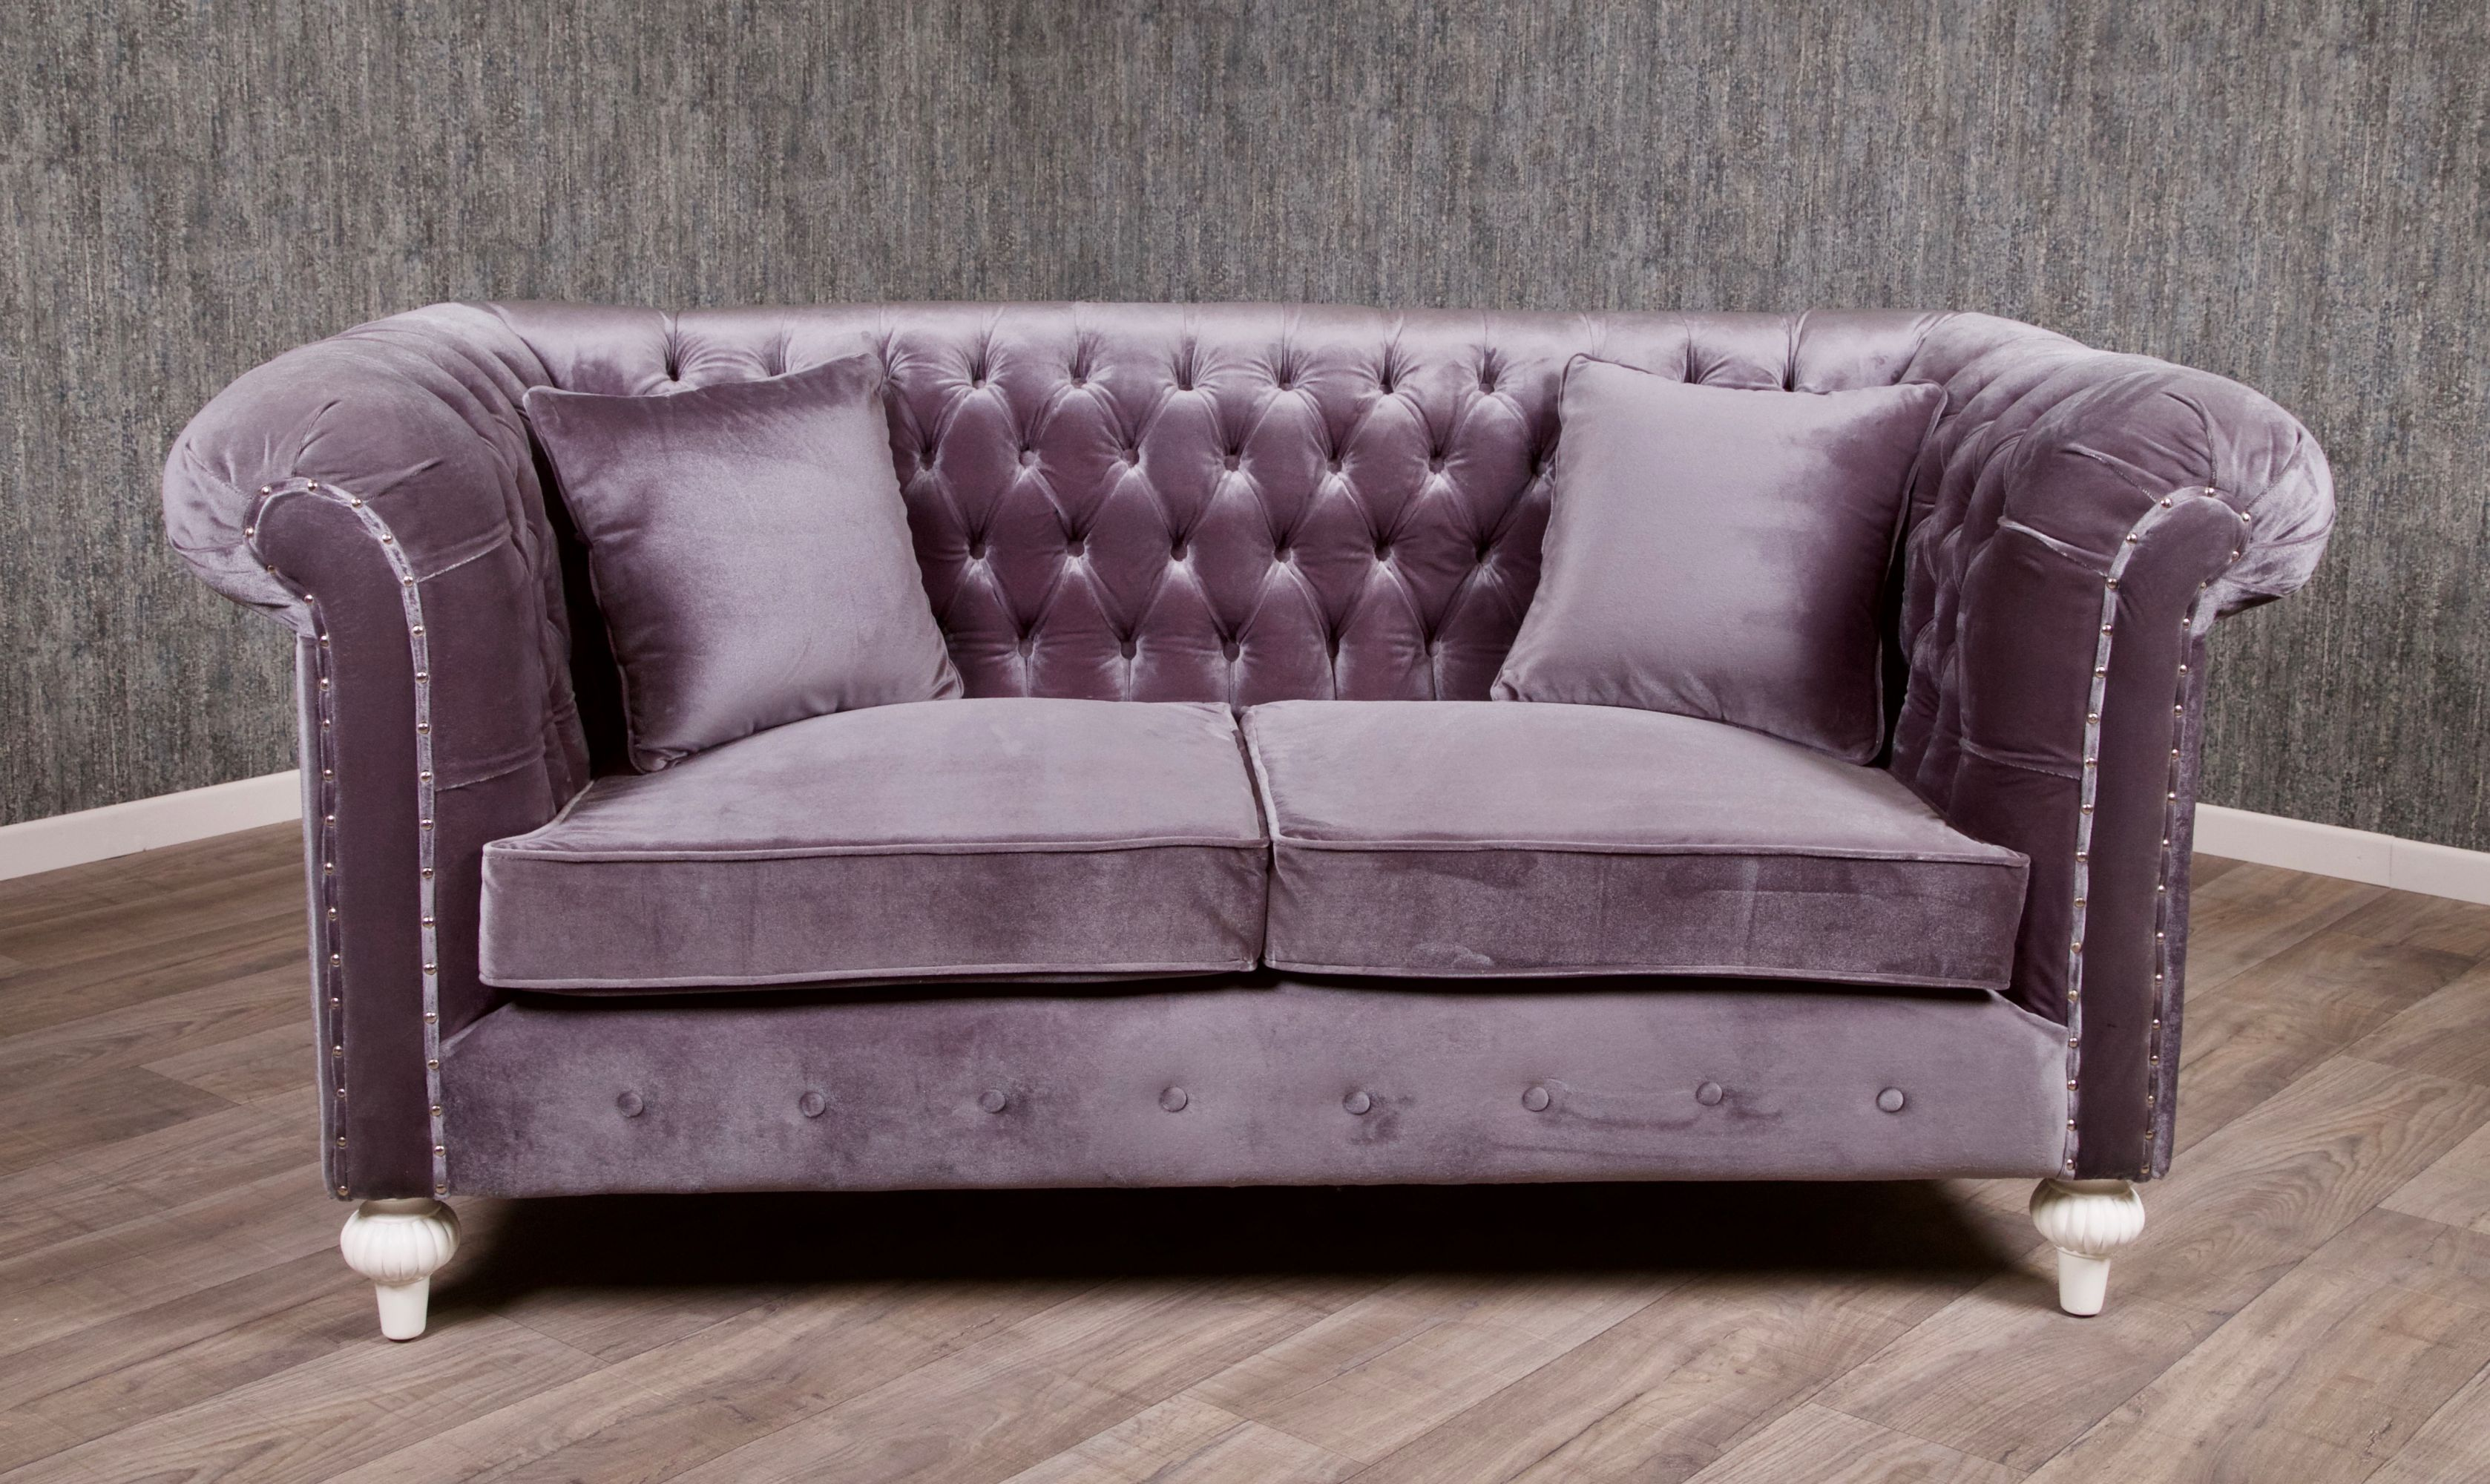 barock chesterfield sofa 2 sitzer empire grau sofas sofas sessel chaiselongue shop. Black Bedroom Furniture Sets. Home Design Ideas